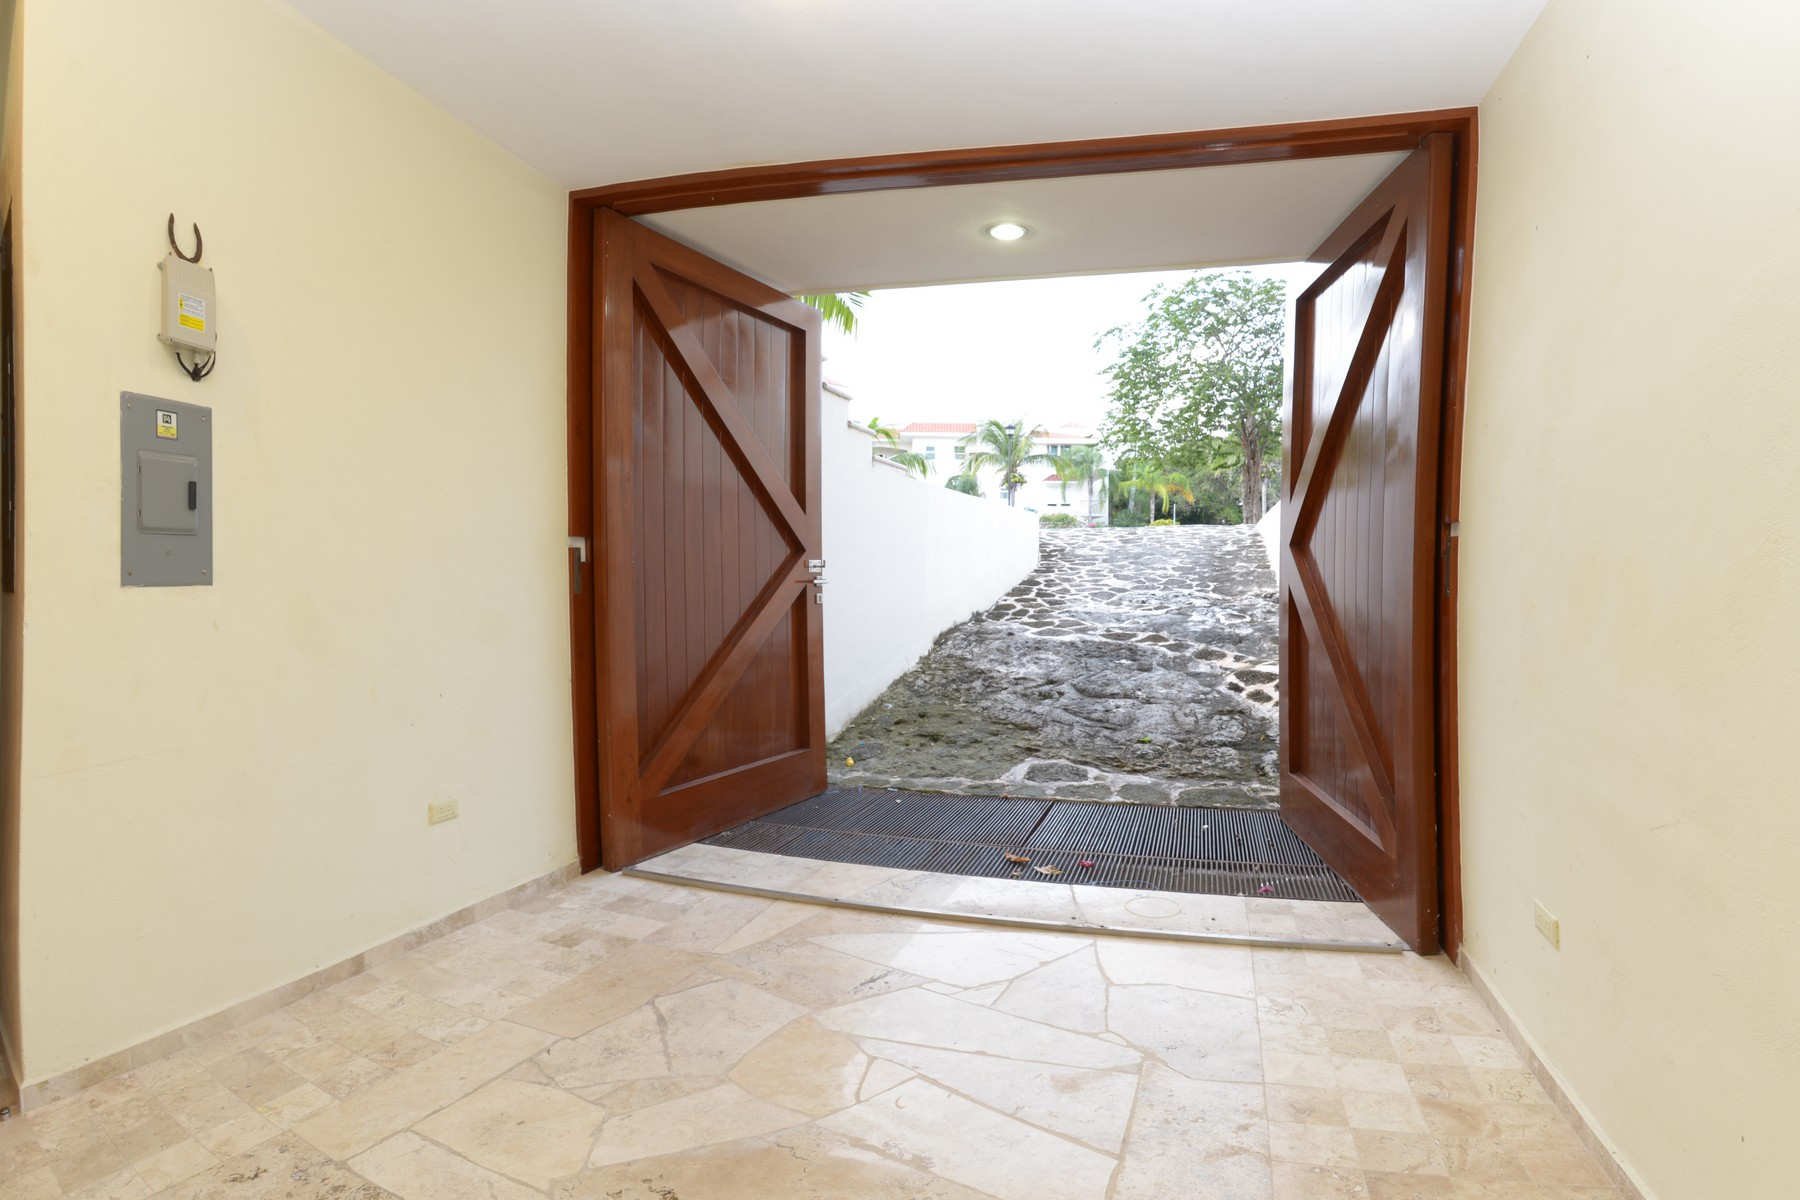 Additional photo for property listing at CASA  ROMA Retorno Xaman-Ha, Lol-Ha Ac Playacar Fase II Playa Del Carmen, Quintana Roo 77710 México